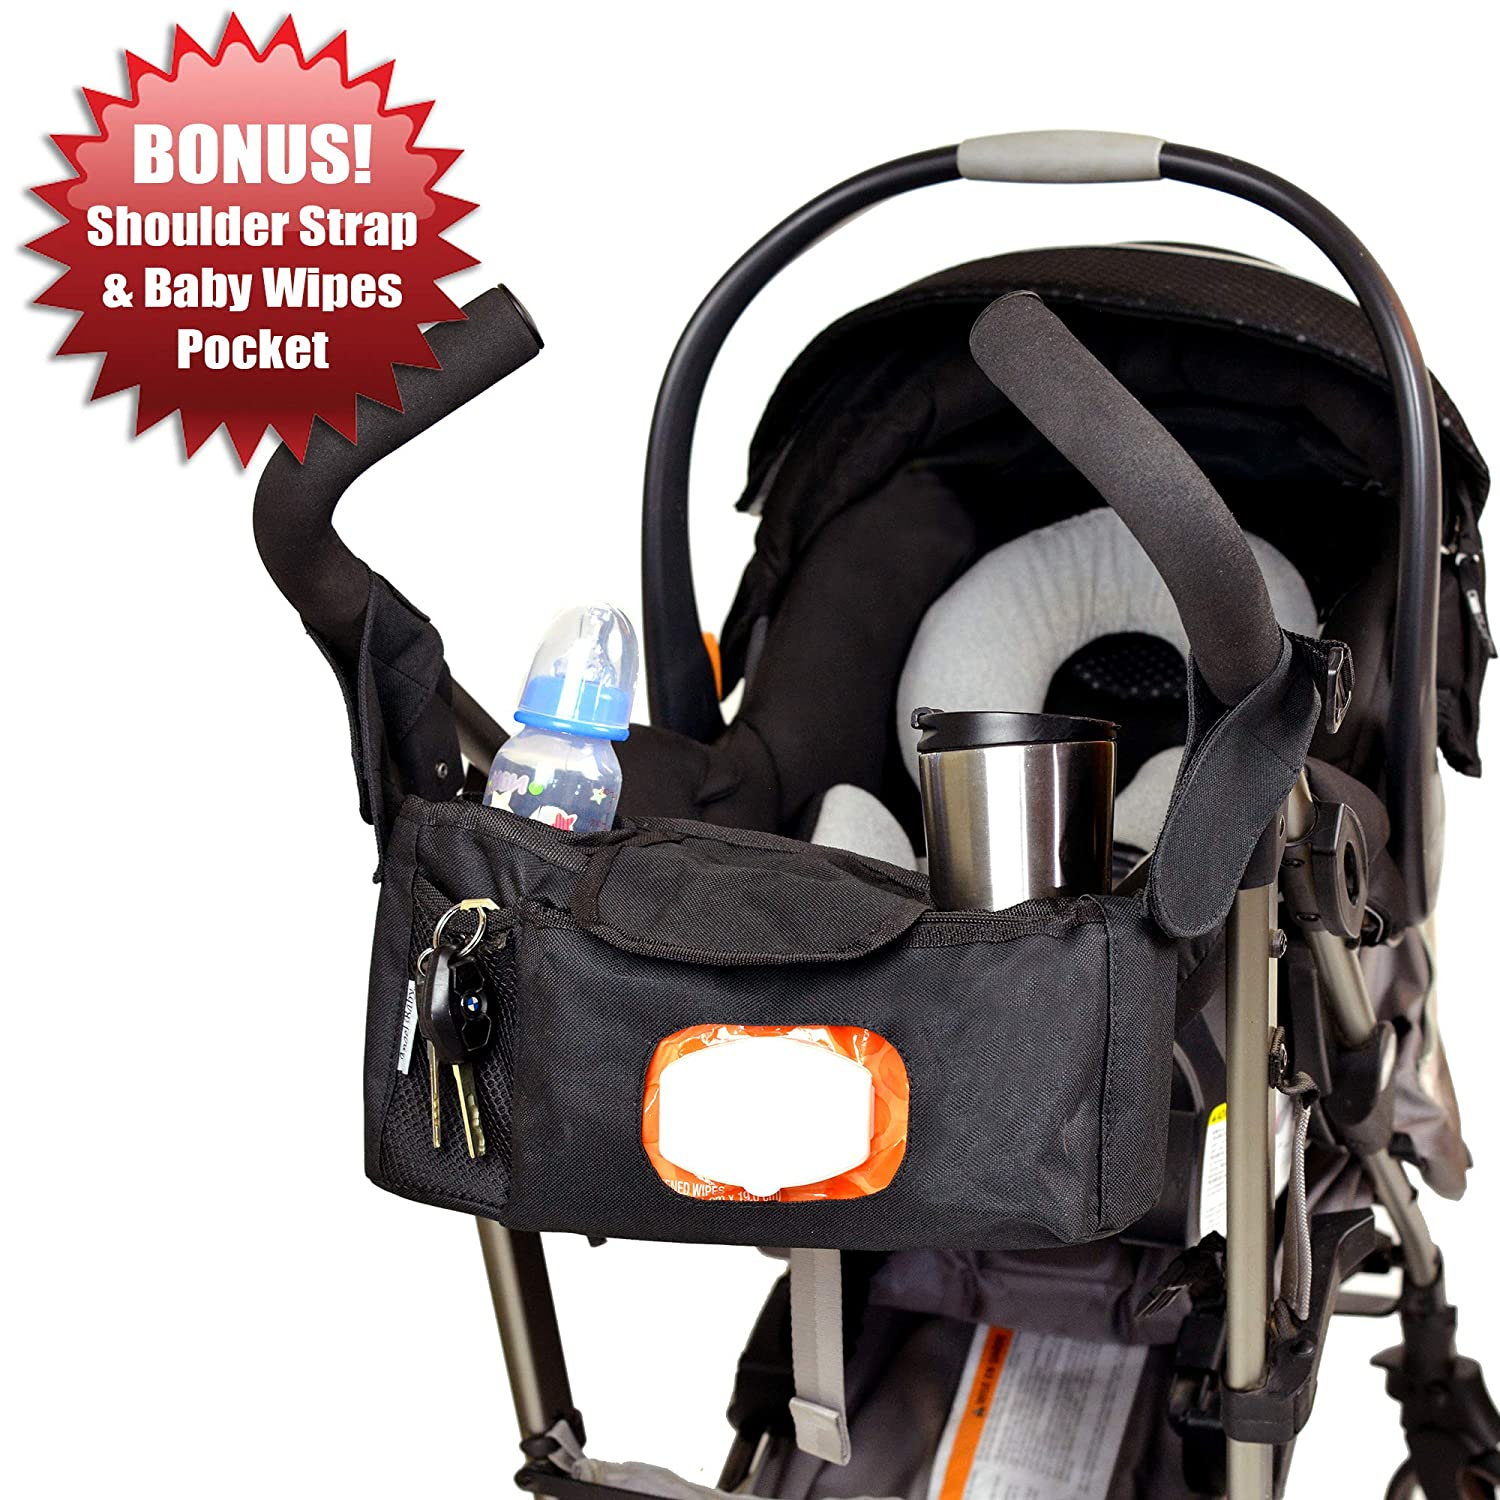 Angel Baby Stroller Organizer Diaper Bag w/SHOULDER STRAP & WIPES POCKET - Universal with Double Insulated Cup Holders and Back Zipper Pocket for Stroller Accessories (25.5in x 4in.) Angel Direct Products AB-STORG